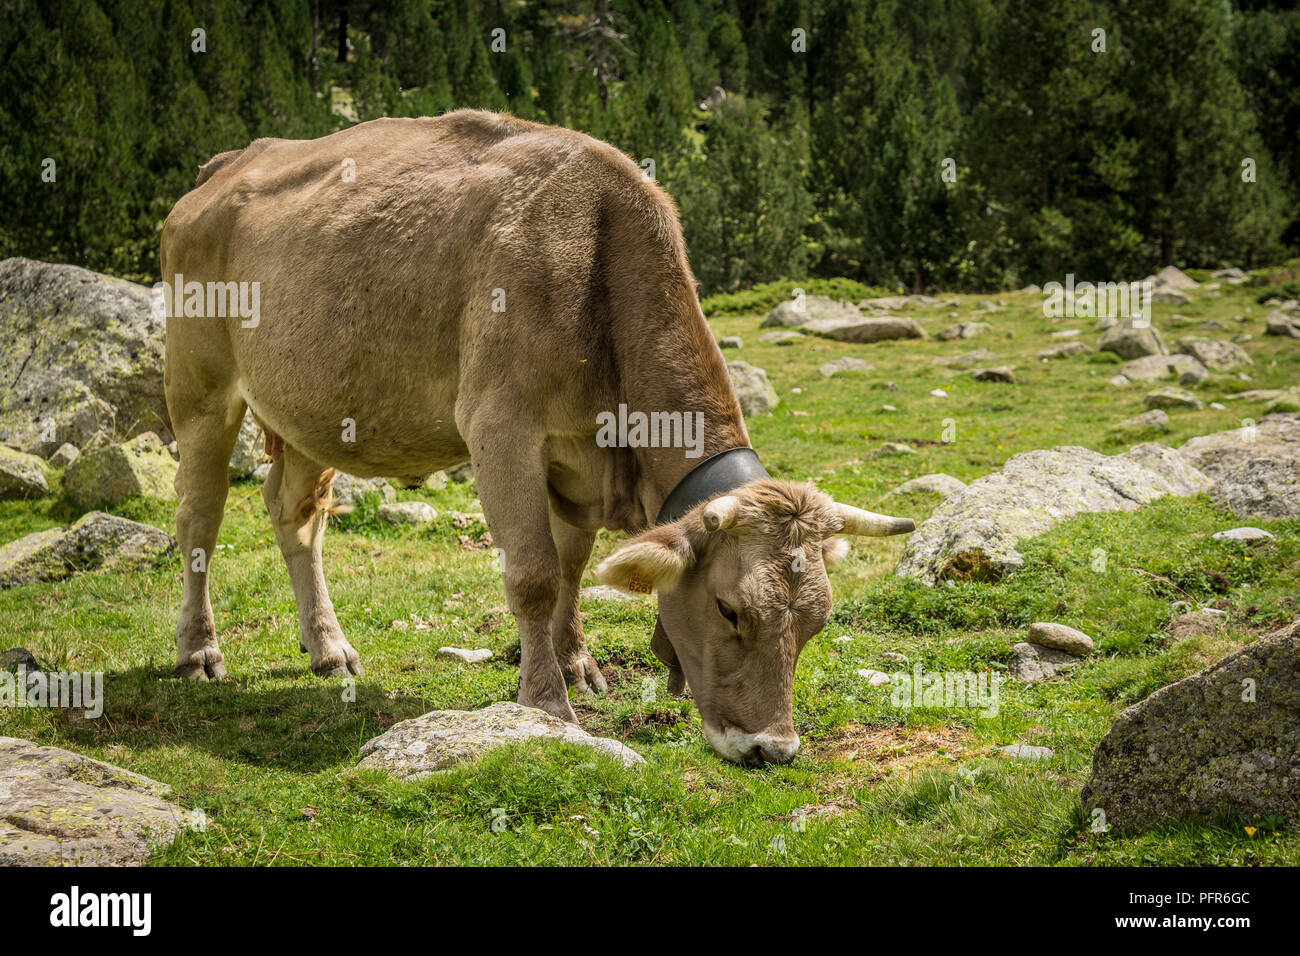 Cows eating grass on a mountain side in Aiguestortes National Park in Catalan Pyrenees, Spain. - Stock Photo